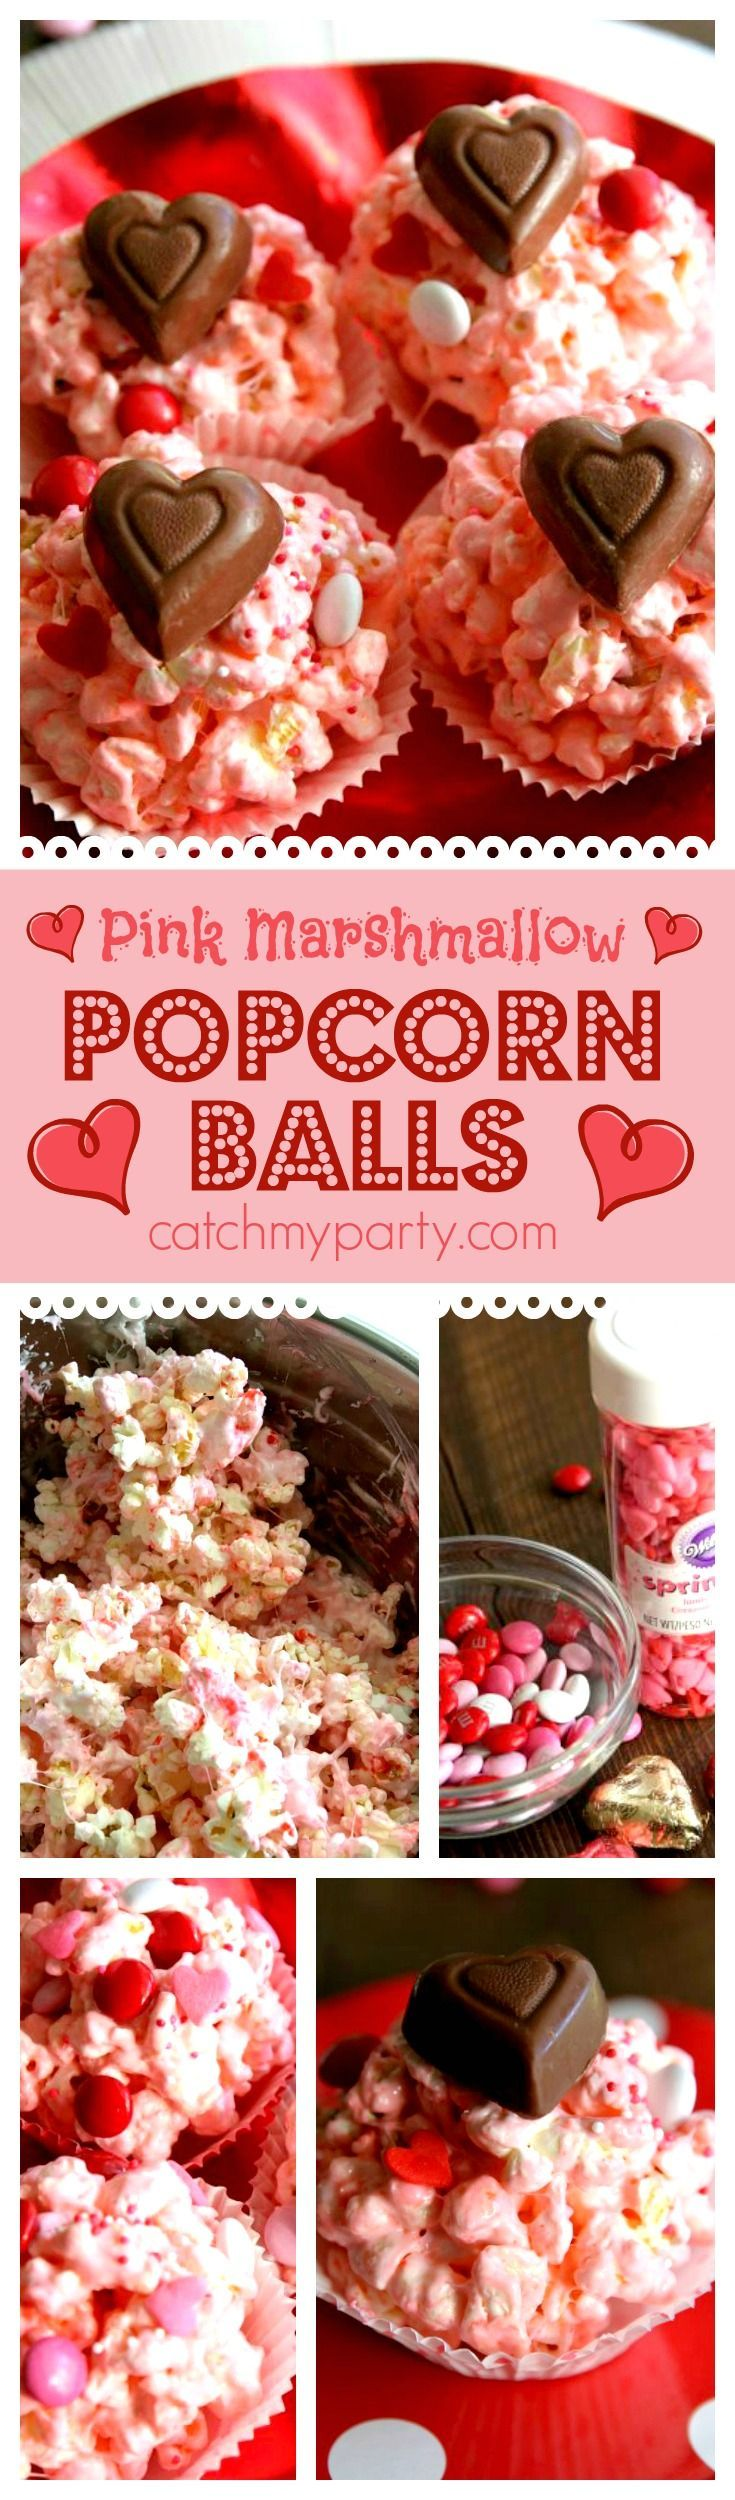 Pink marshmallow popcorn balls perfect treat for Valentine's Day. Make them in 10 minutes in the microwave. Great to serve at a kids Valentine's Day party. See more party ideas at http://CatchMyParty.com.